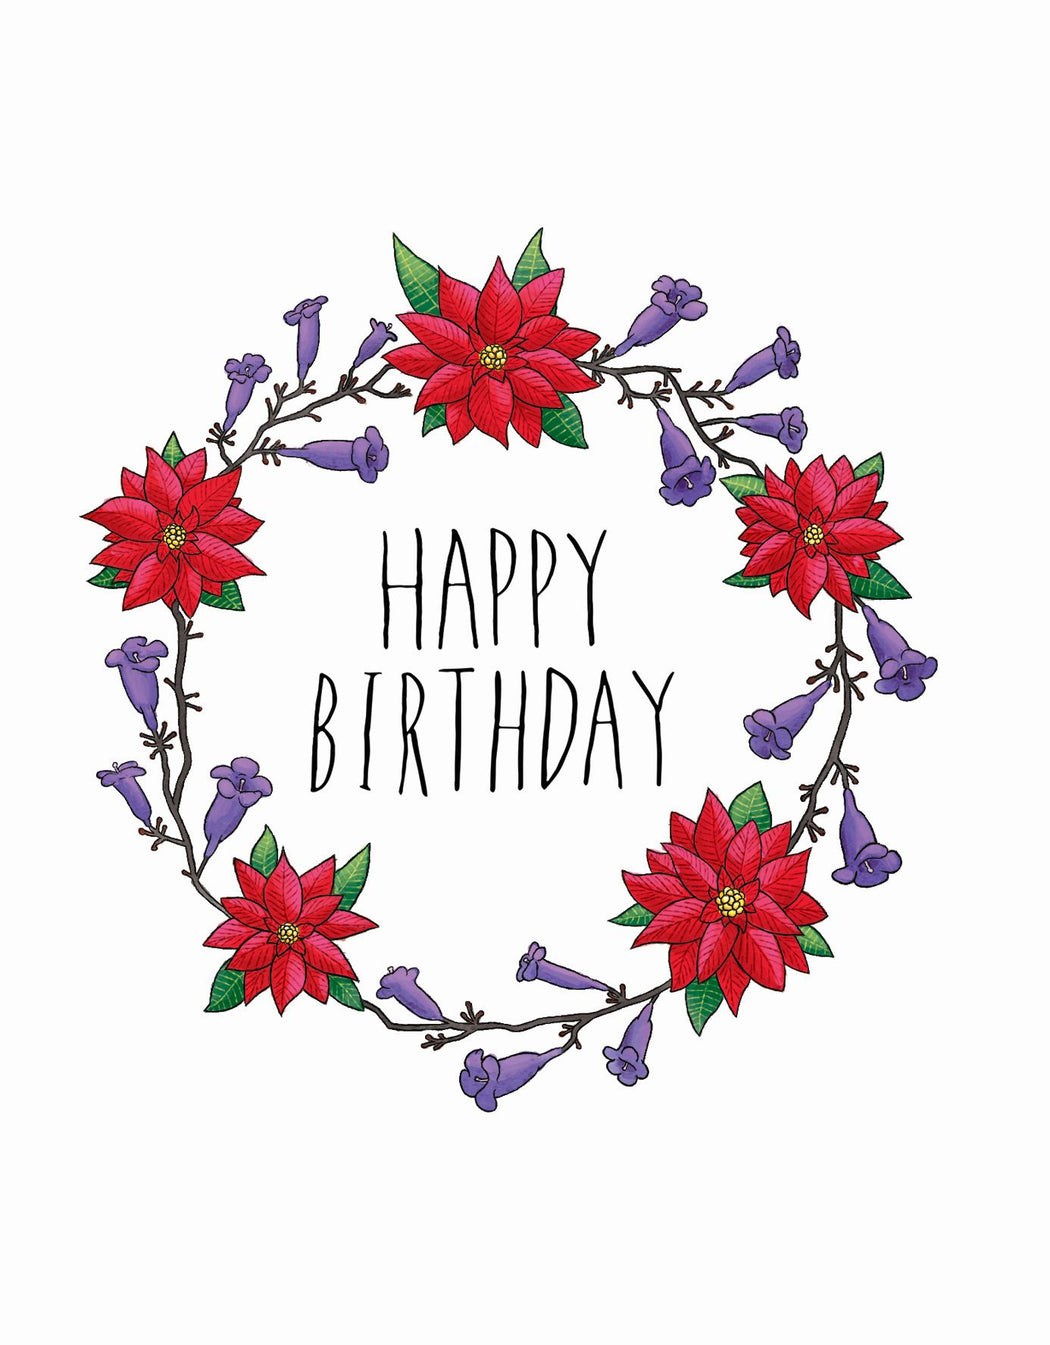 Squirrel Design Studio-Jacaranda & Poinsettia Wreath - Birthday Card-Mott and Mulberry